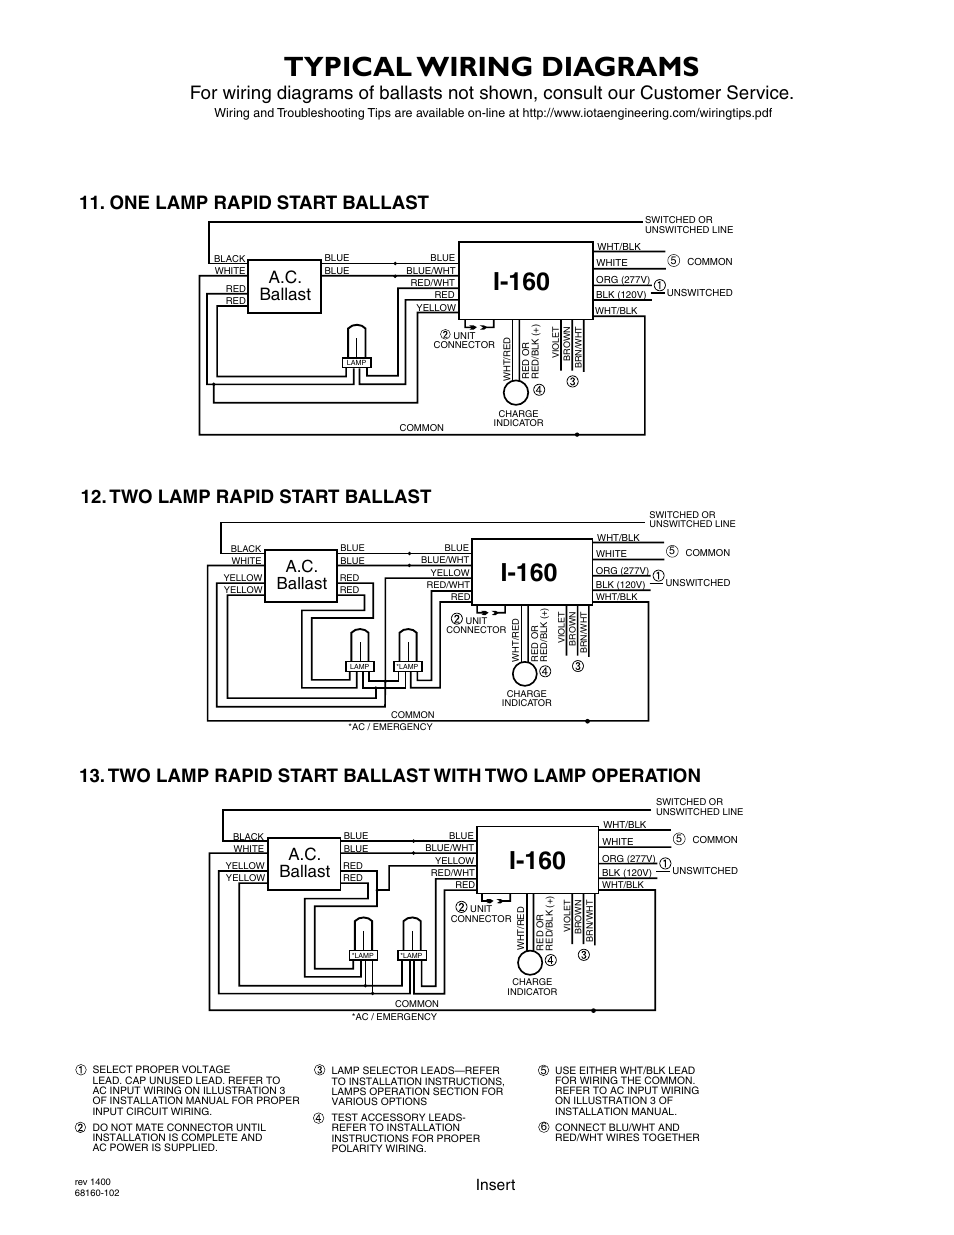 4 Light Rapid Start Ballast Wiring Diagram Schematics Fluorescent Iota House Symbols U2022 Rh Maxturner Co Electrical Instant